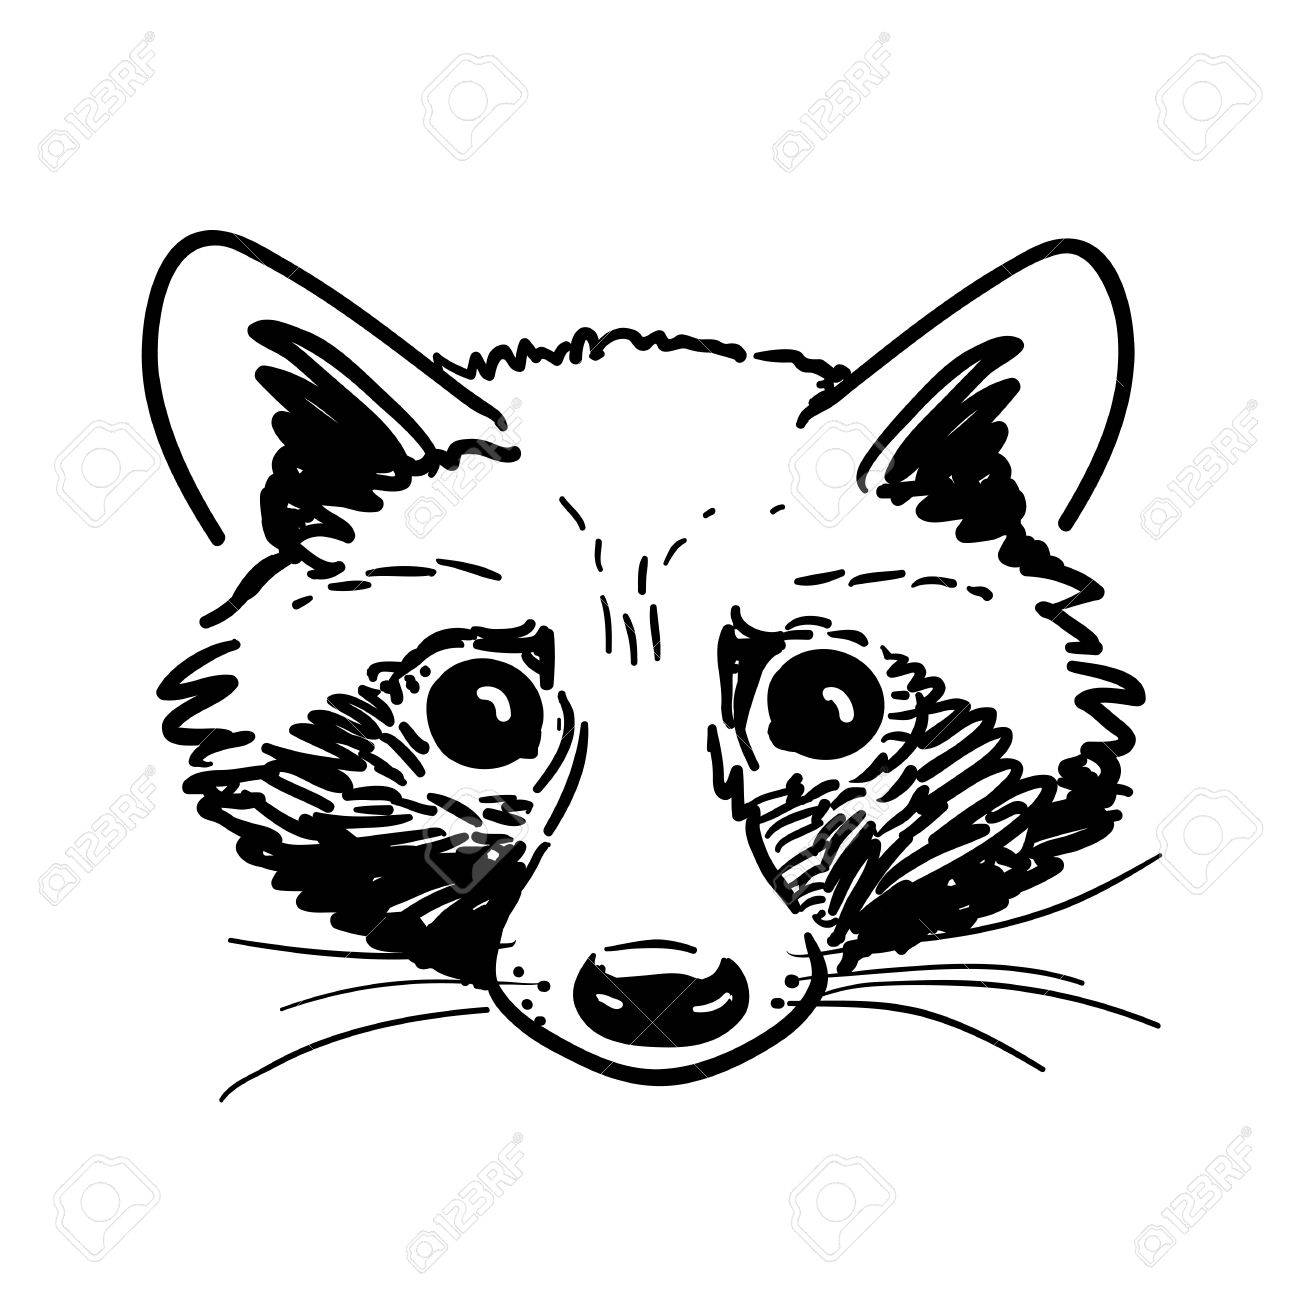 1300x1300 Vector Hand Drawn Pen And Ink Black And White Cute Raccoon Face